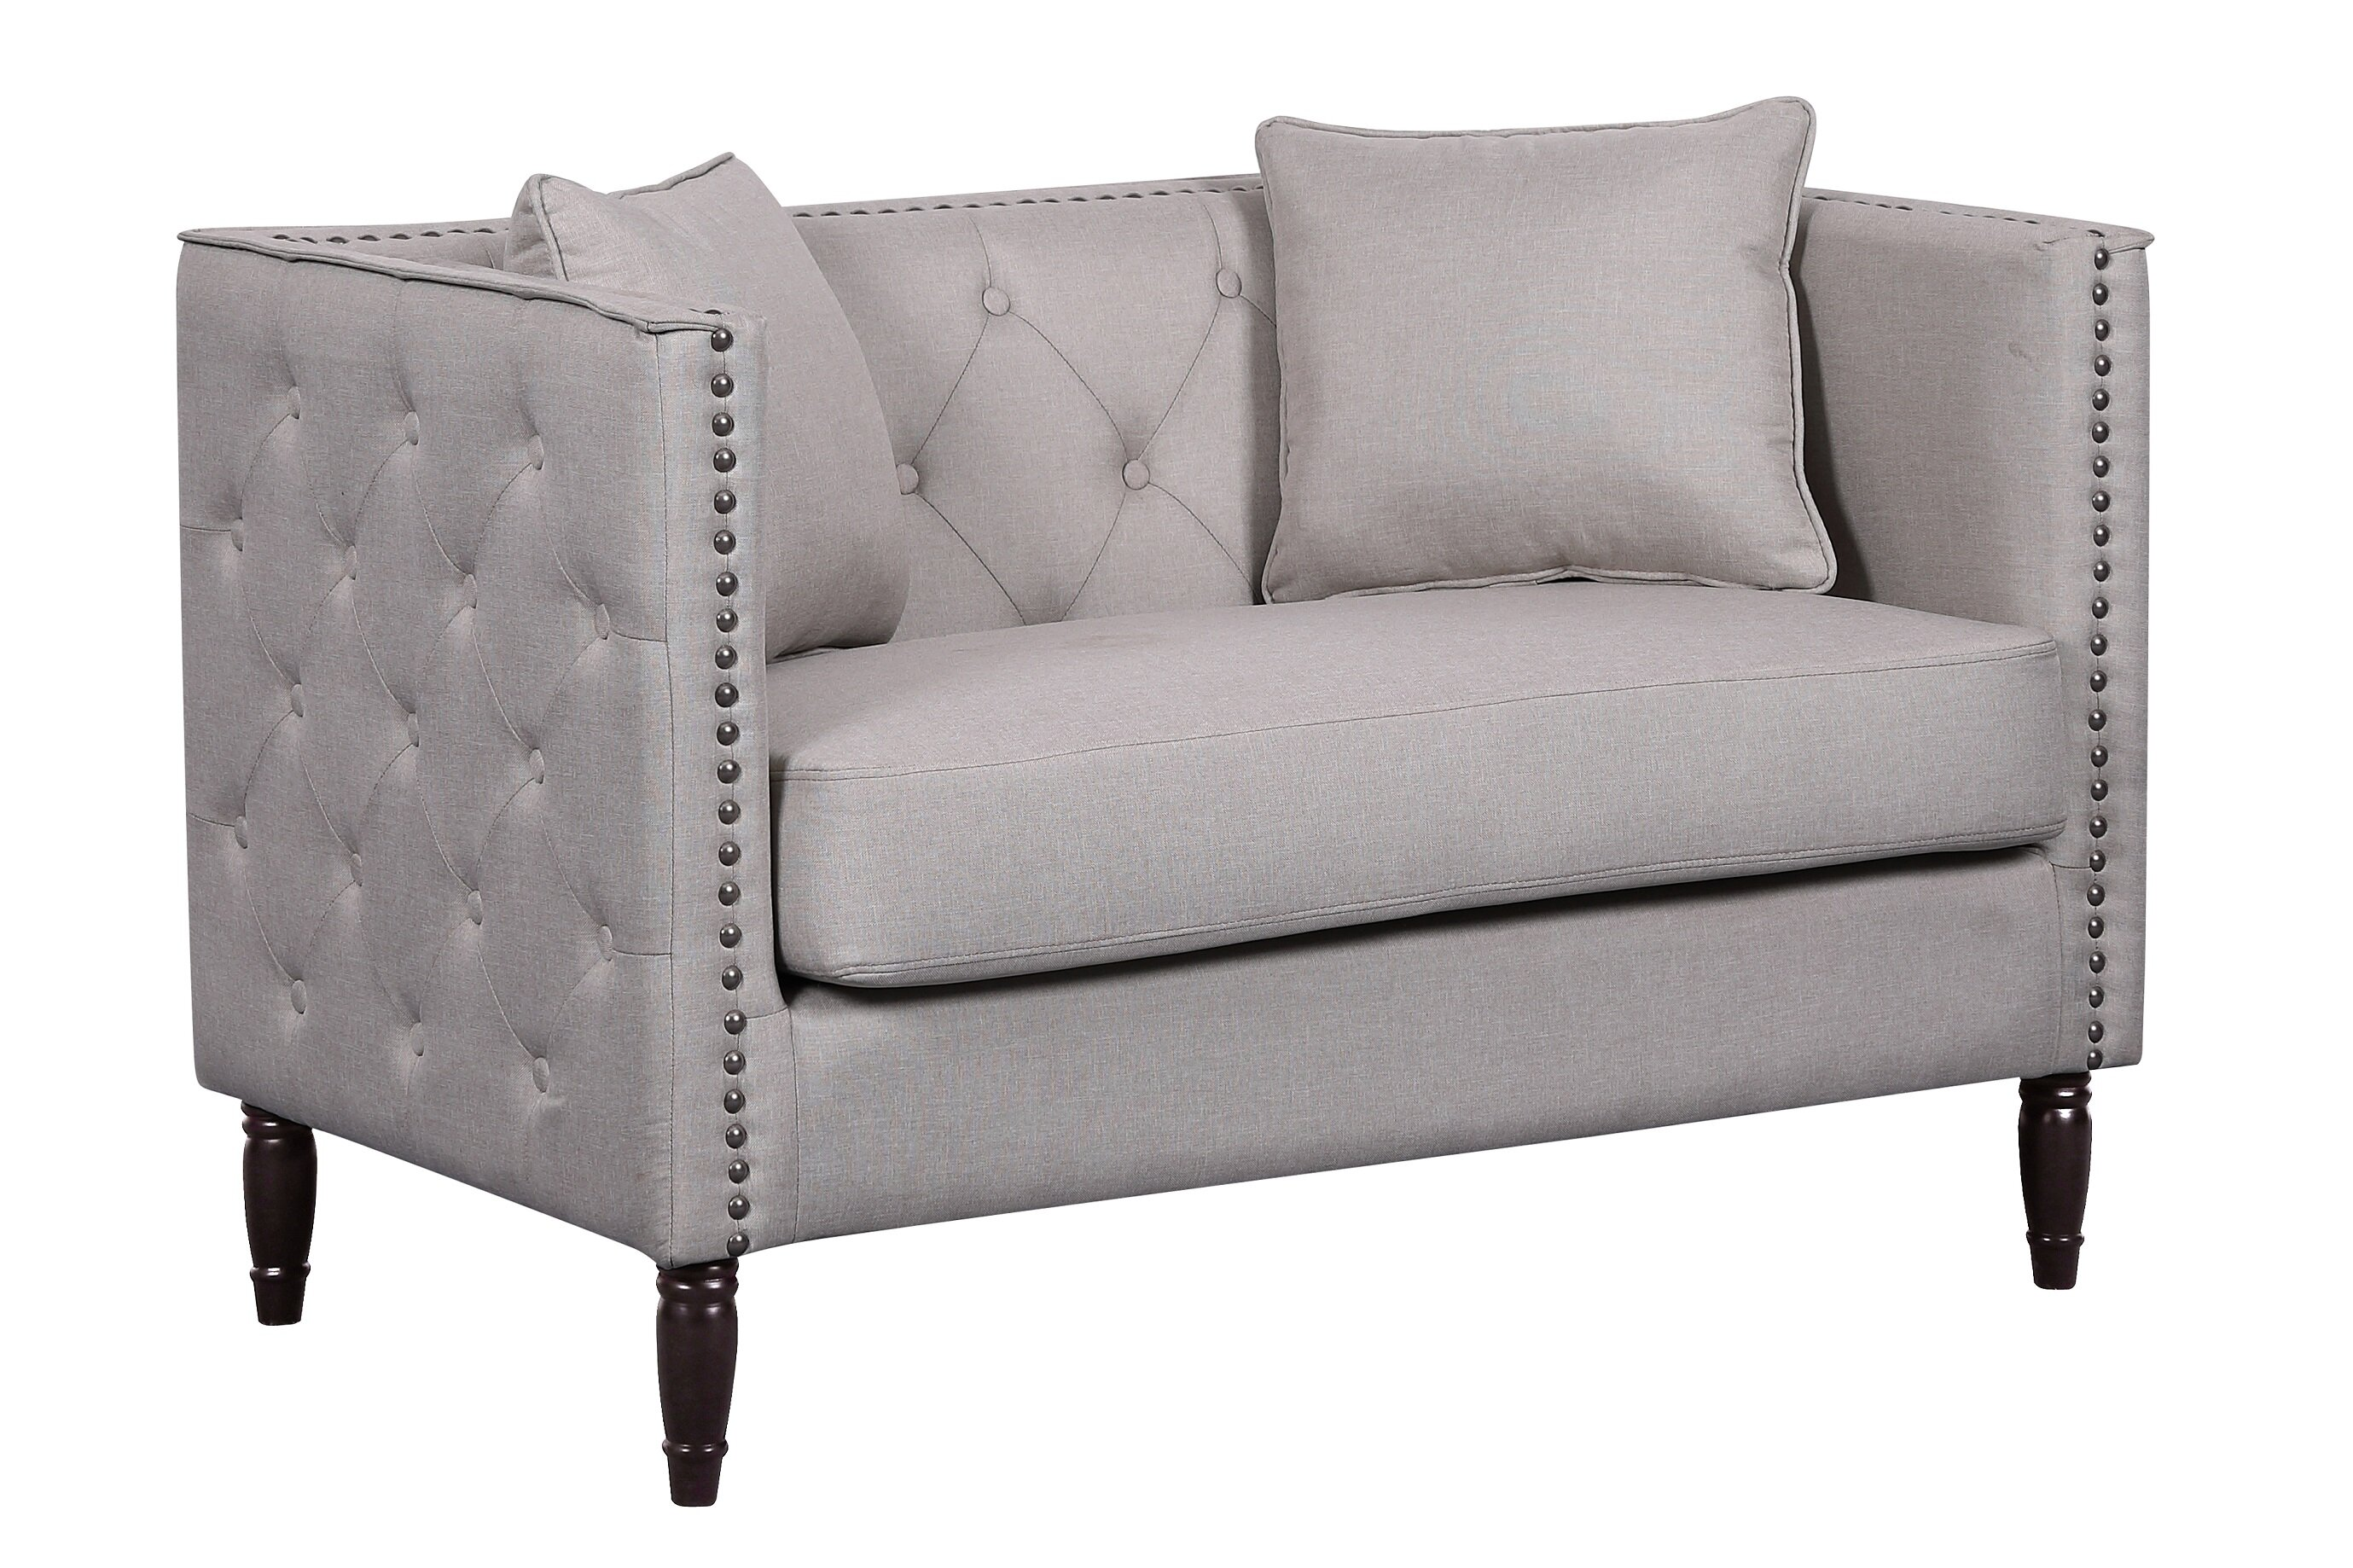 thehrtechnologist super comfortable of loveseat white image tufted design